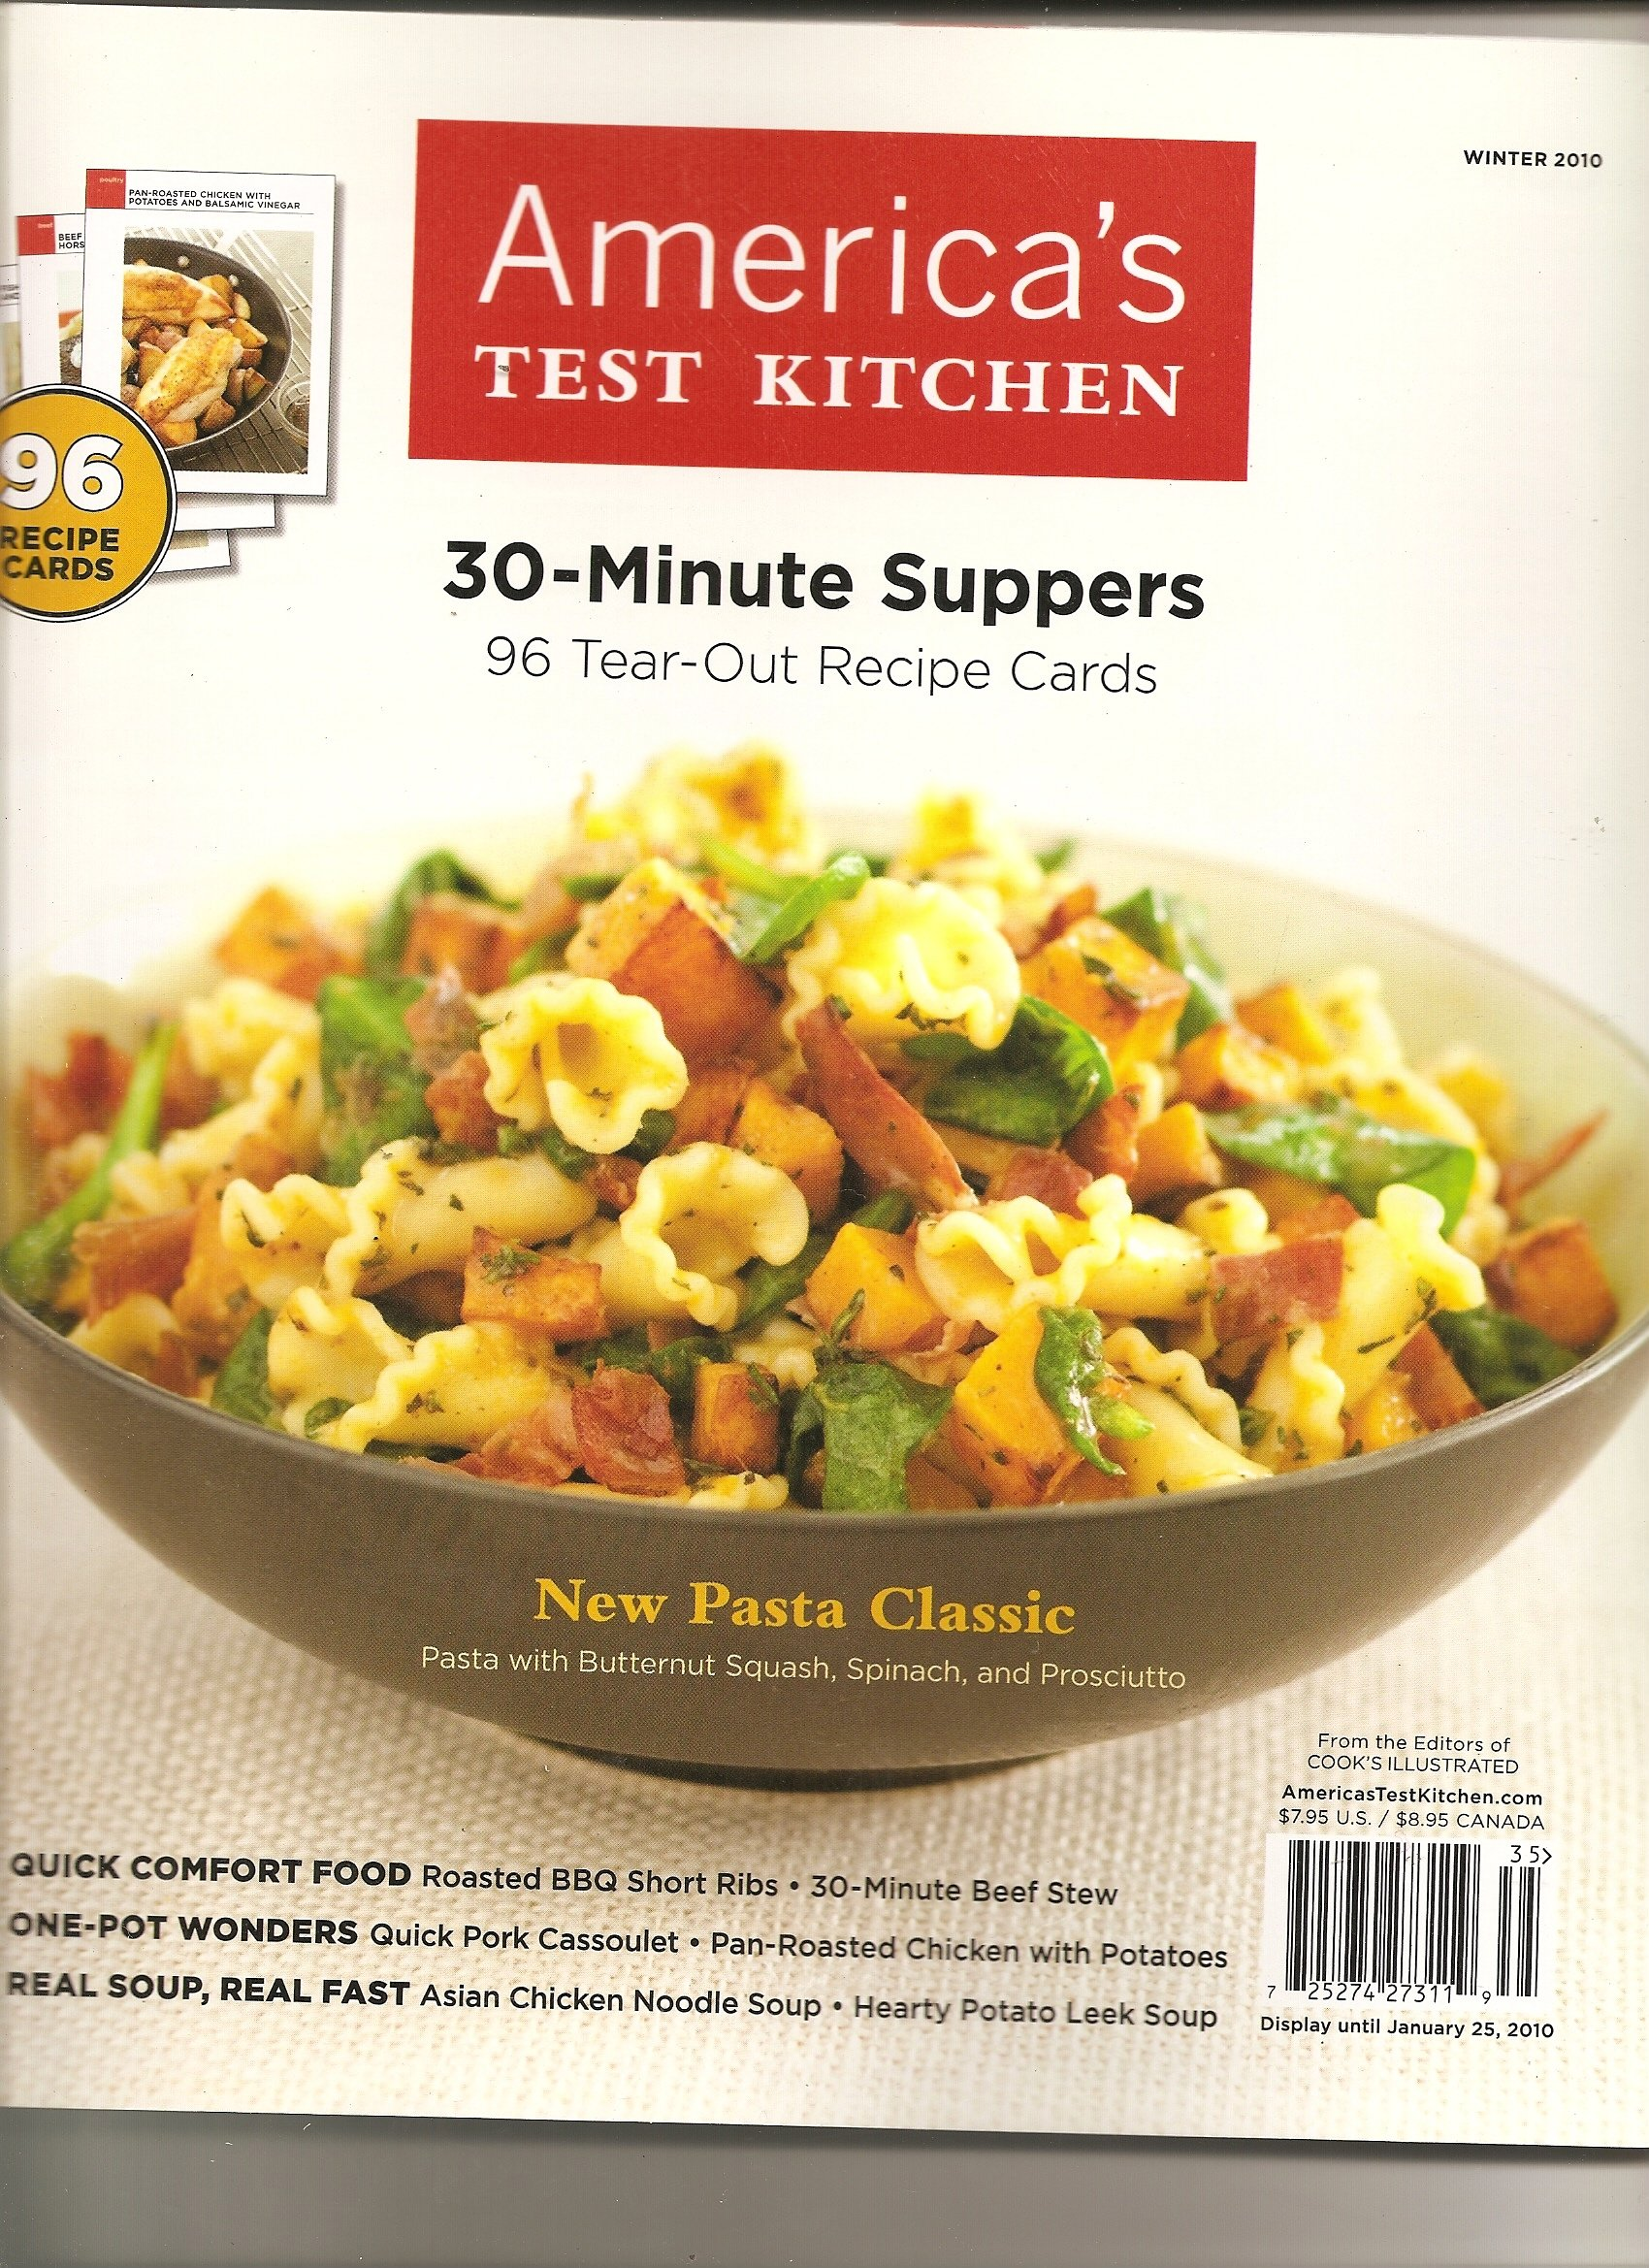 Americas test kitchen 30 minute suppers cooks illustrated 96 tear americas test kitchen 30 minute suppers cooks illustrated 96 tear out recipe cards winter 2010 amazon books forumfinder Images